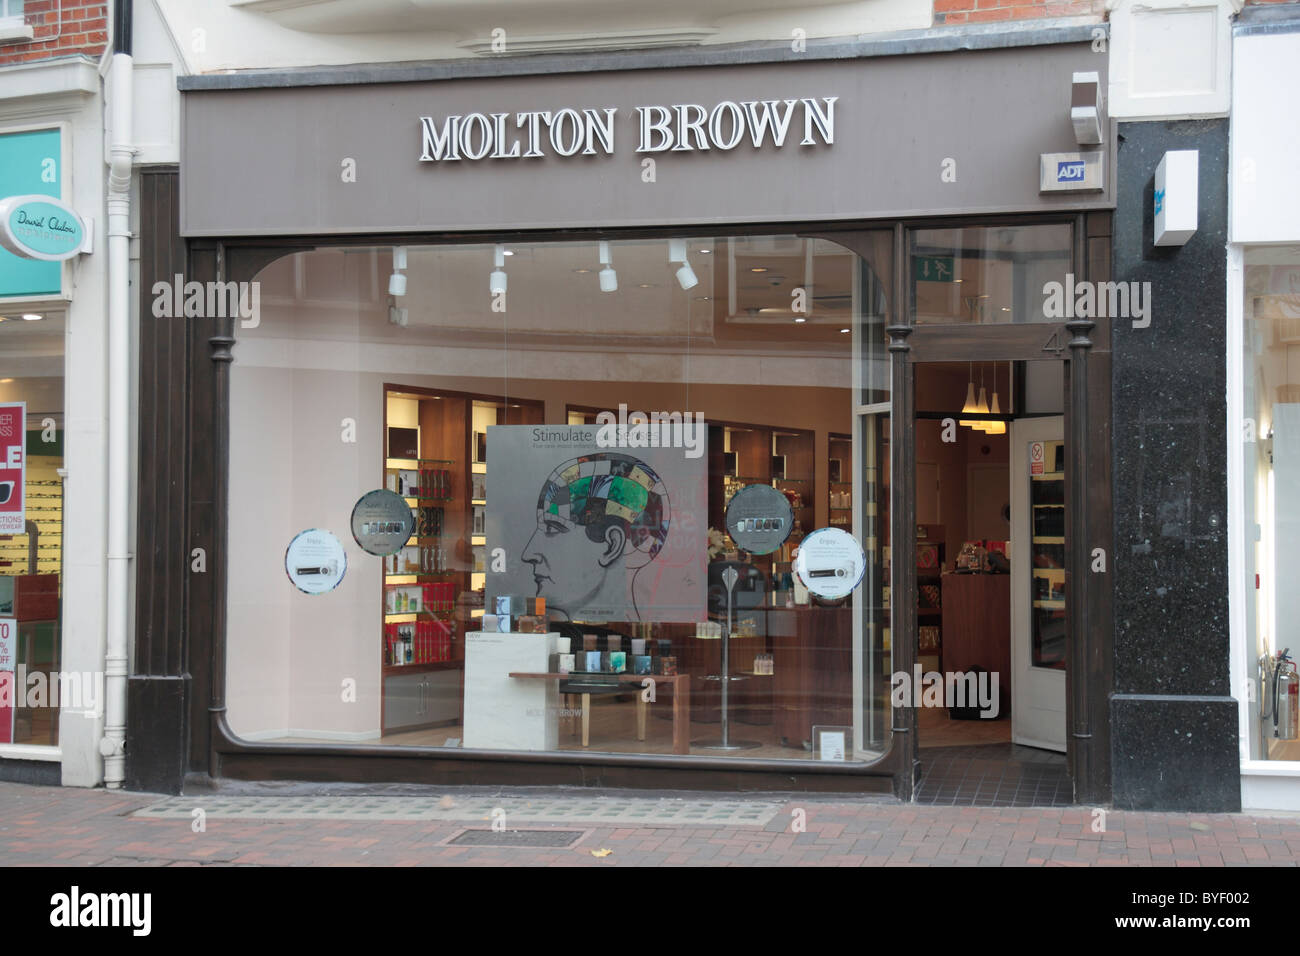 The Molton Brown beauty products store in Richmond Upon Thames, Surrey, UK. - Stock Image